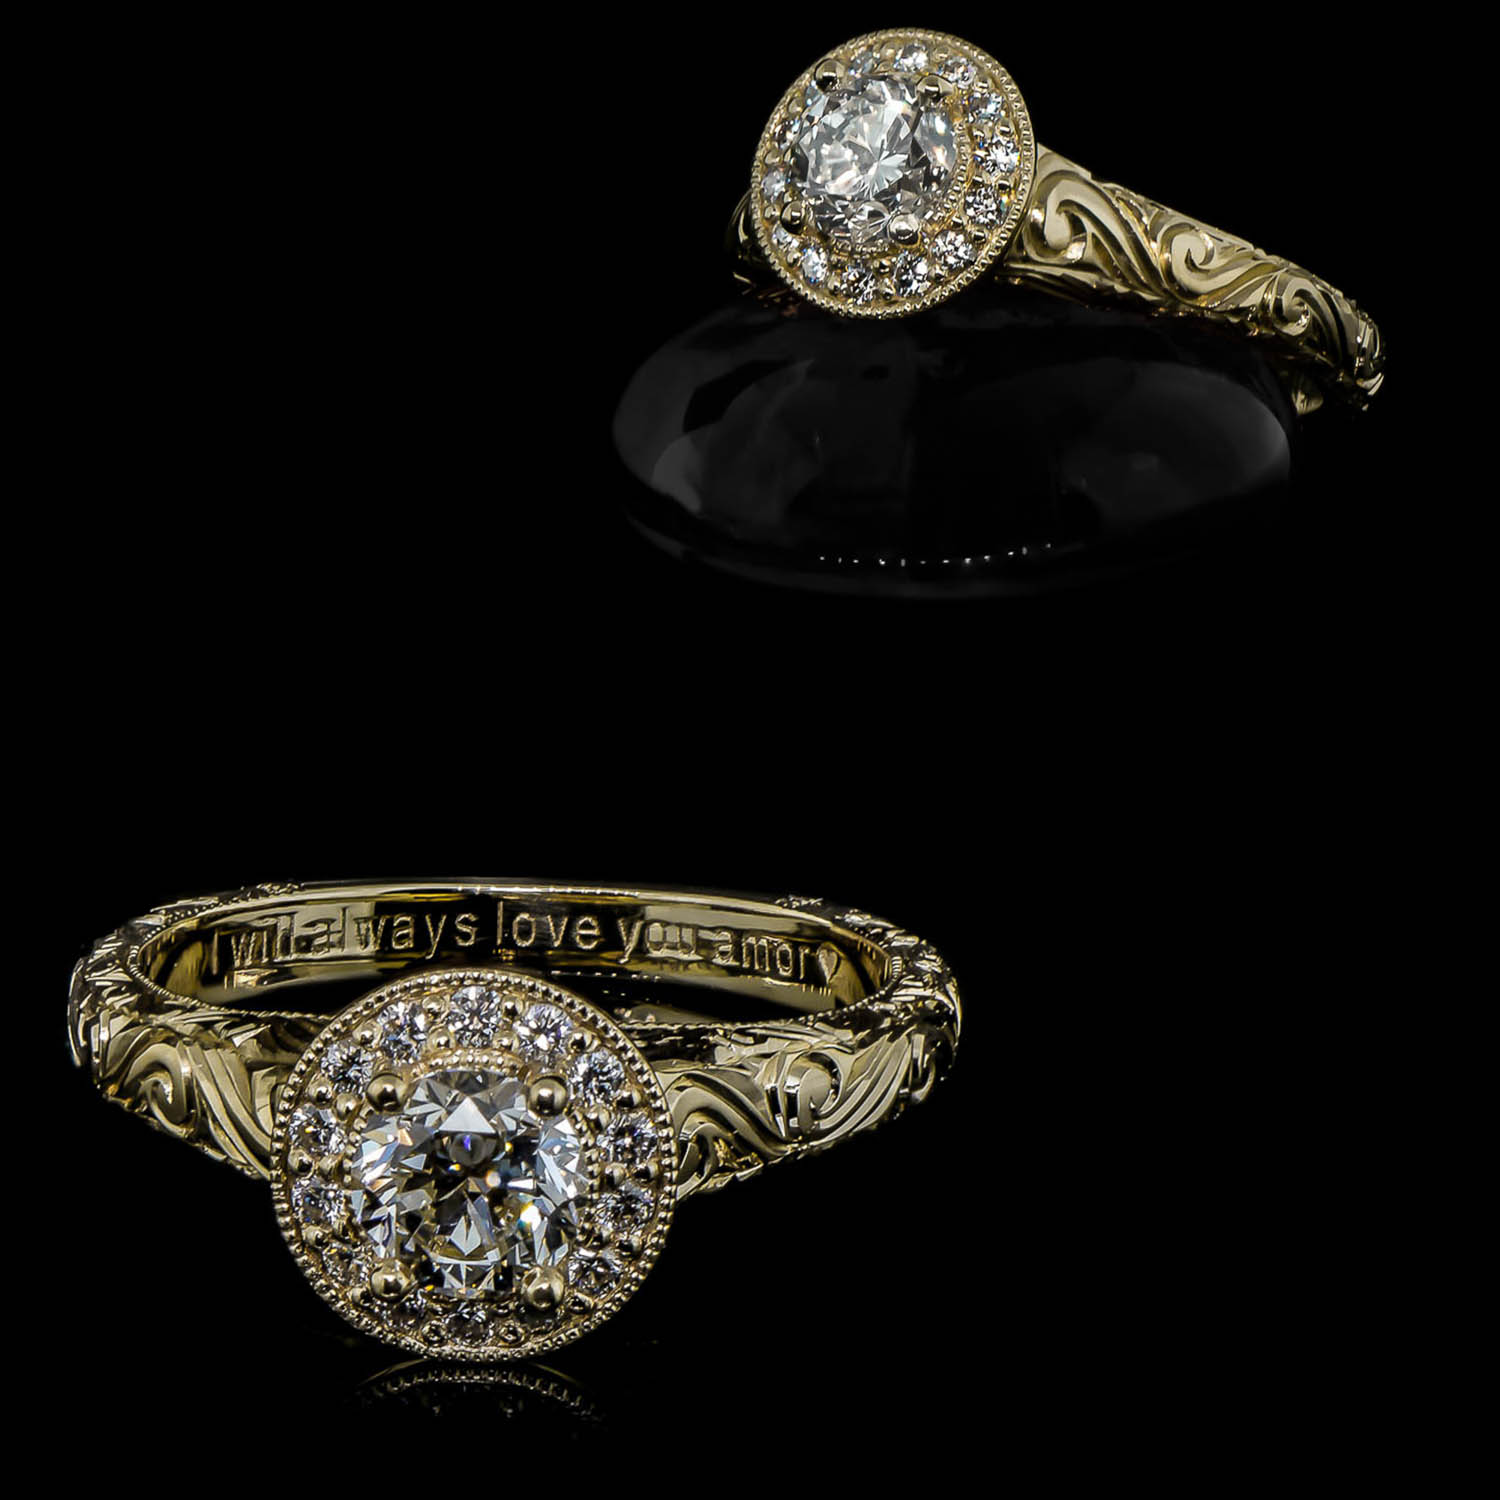 ebelli ring two with black prop (1 of 1).jpg